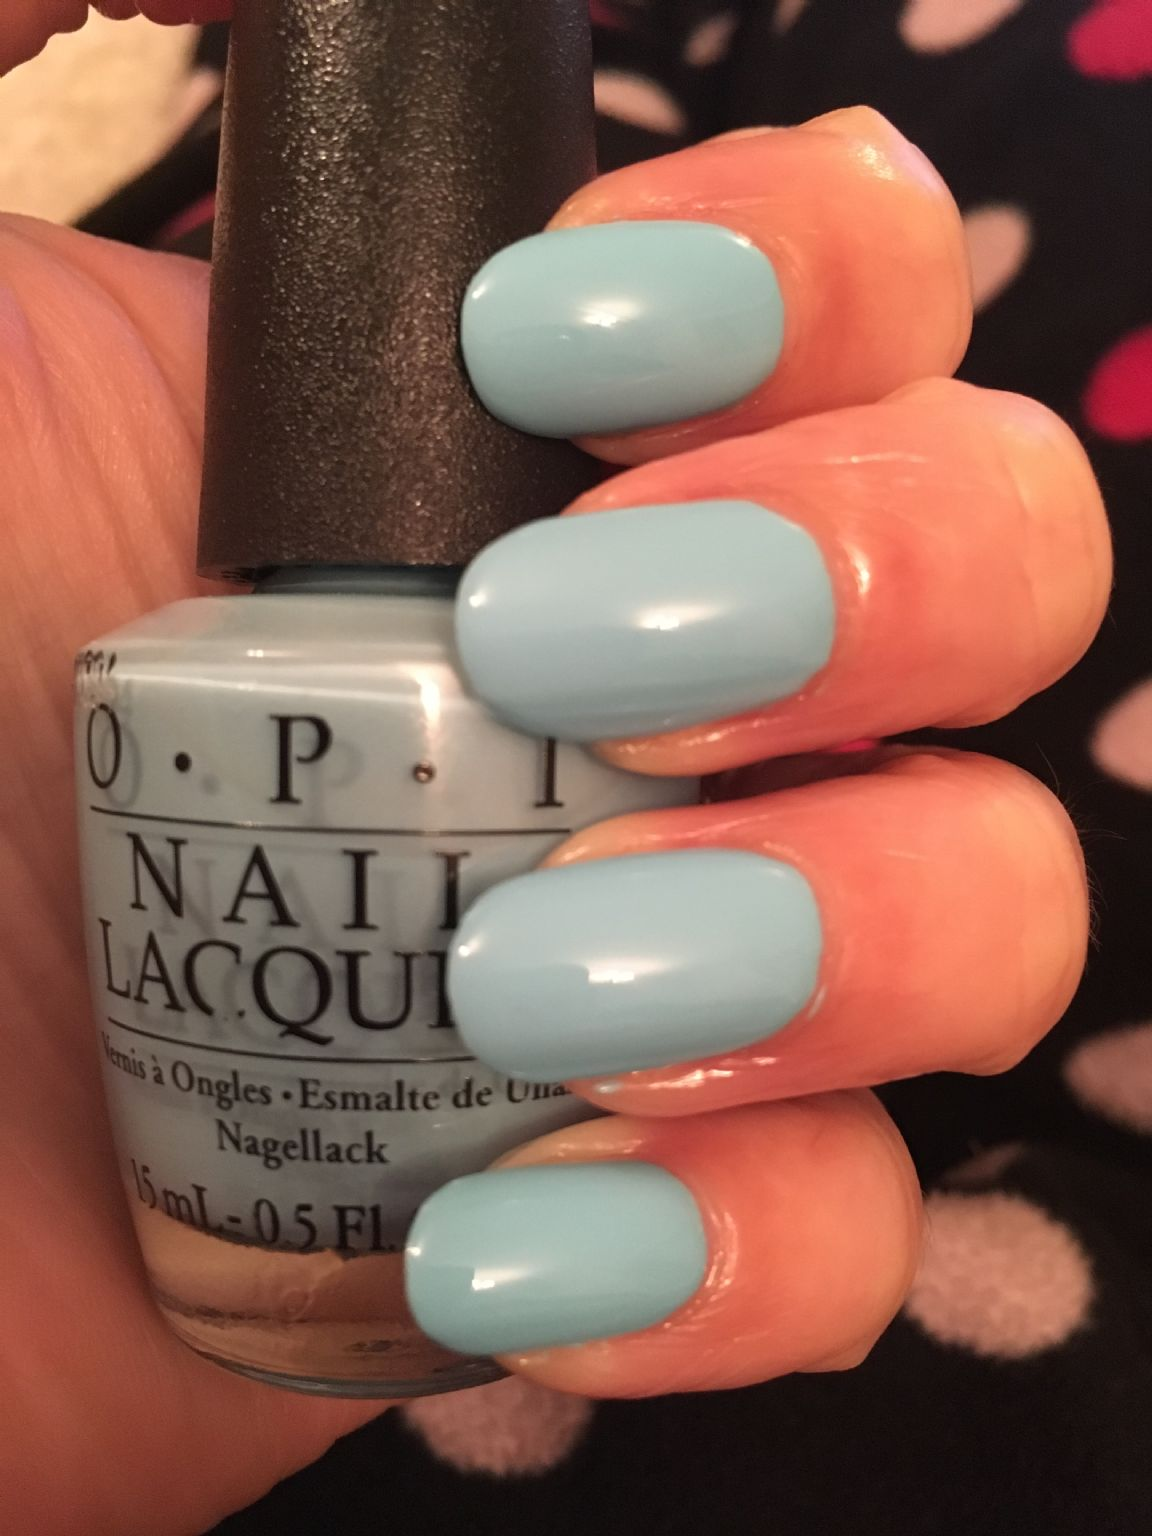 Tiffany Blue Nail Polish Opi : tiffany, polish, Believe, Manicures, Reviews,, Photos,, Ingredients, MakeupAlley